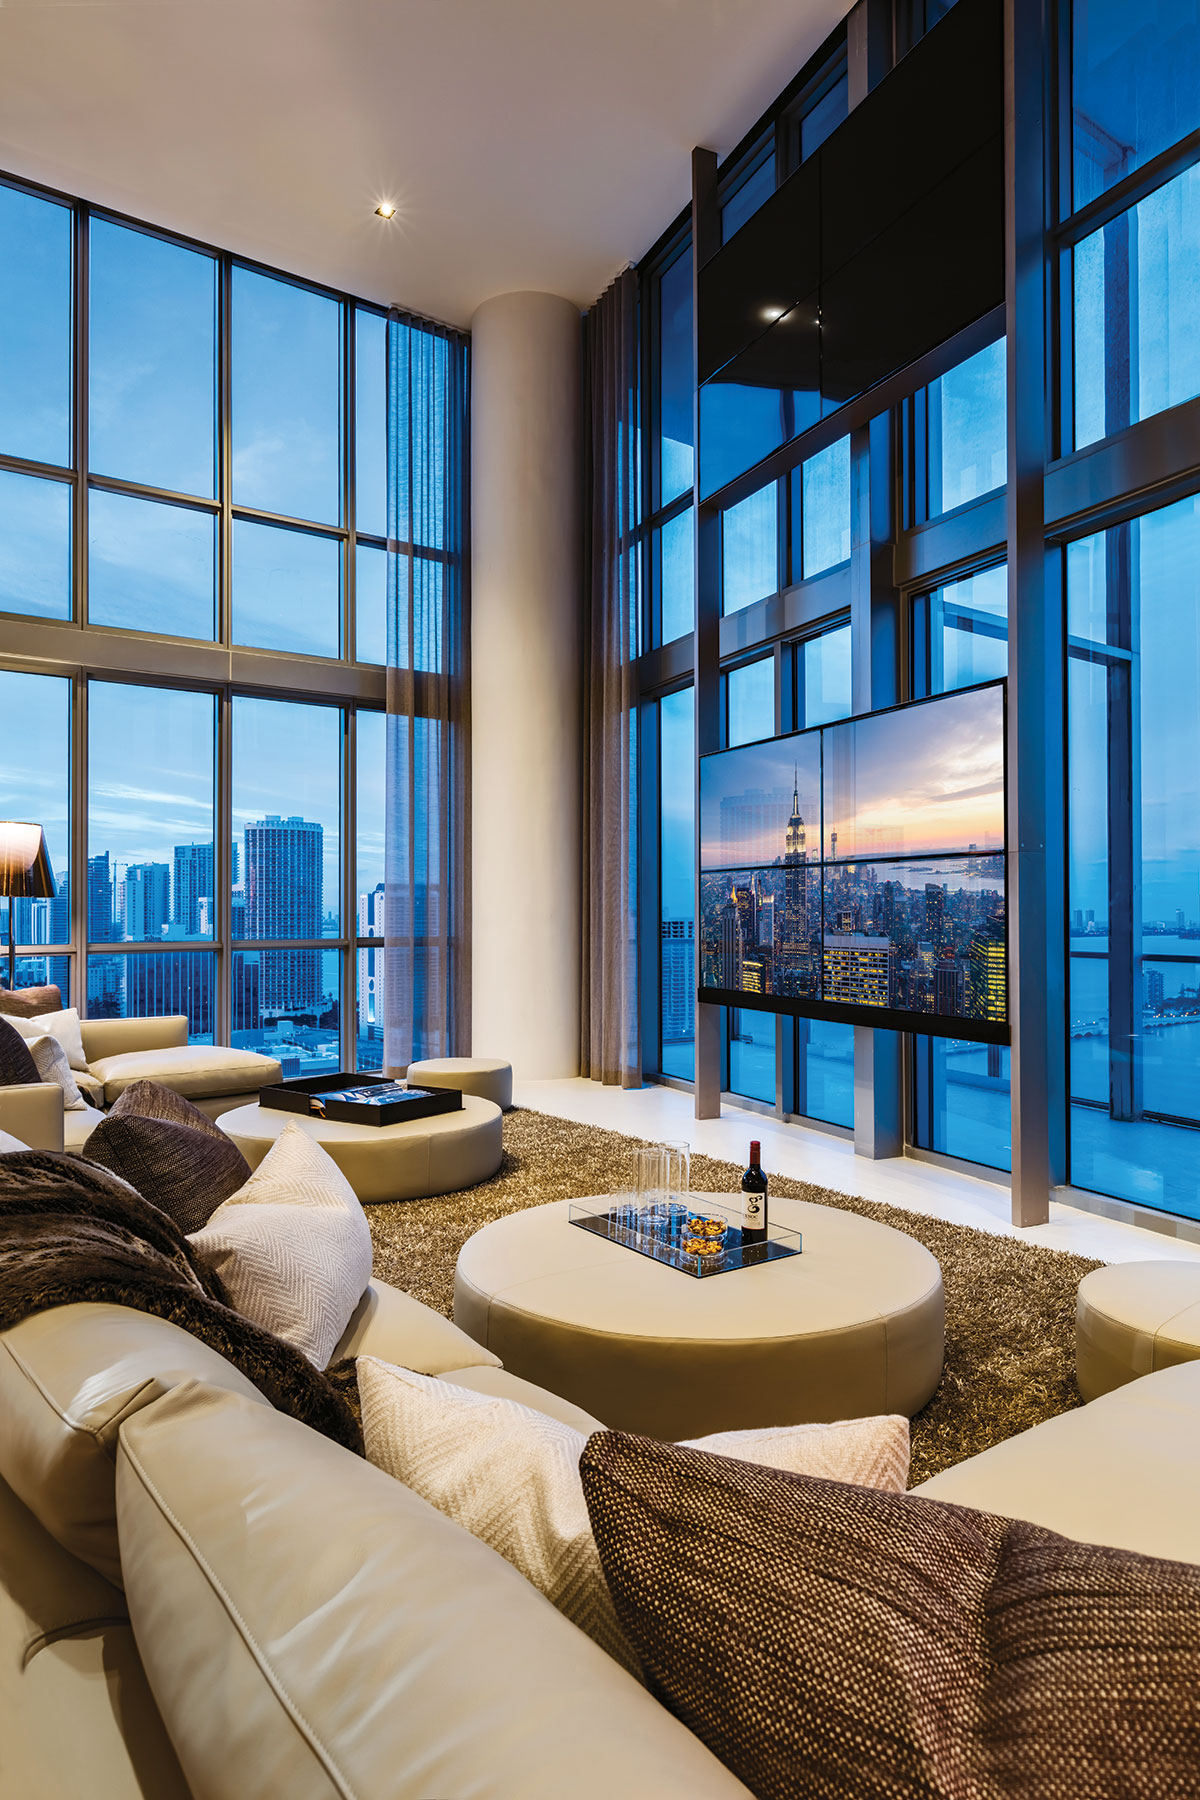 Designer Eric Dyer devised a custom two-story rack designed to house two televisions without distracting from the stunning views. A lower-level TV provides entertainment in the main social spaces, while a second unit floats above for viewing from the master suite.